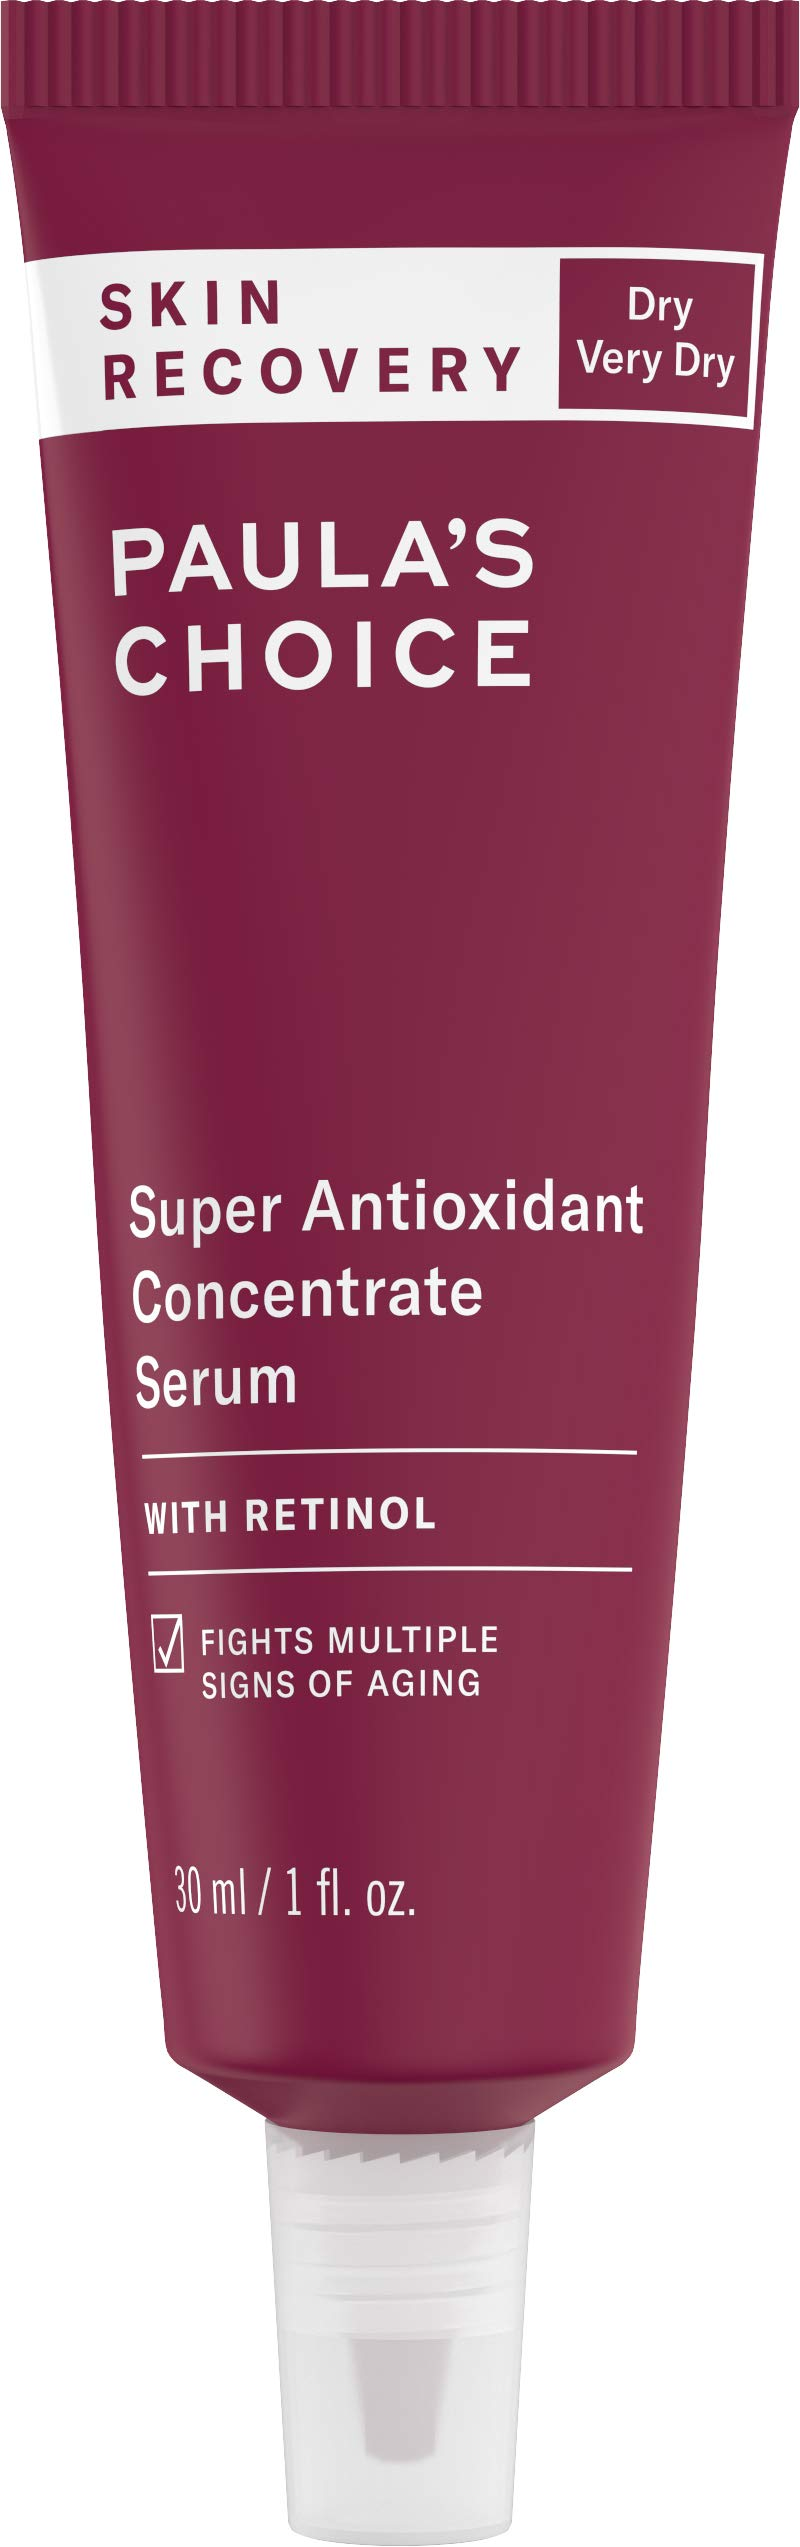 Paula's Choice SKIN RECOVERY Super Antioxidant Serum with Retinol, 1 Ounce Tube